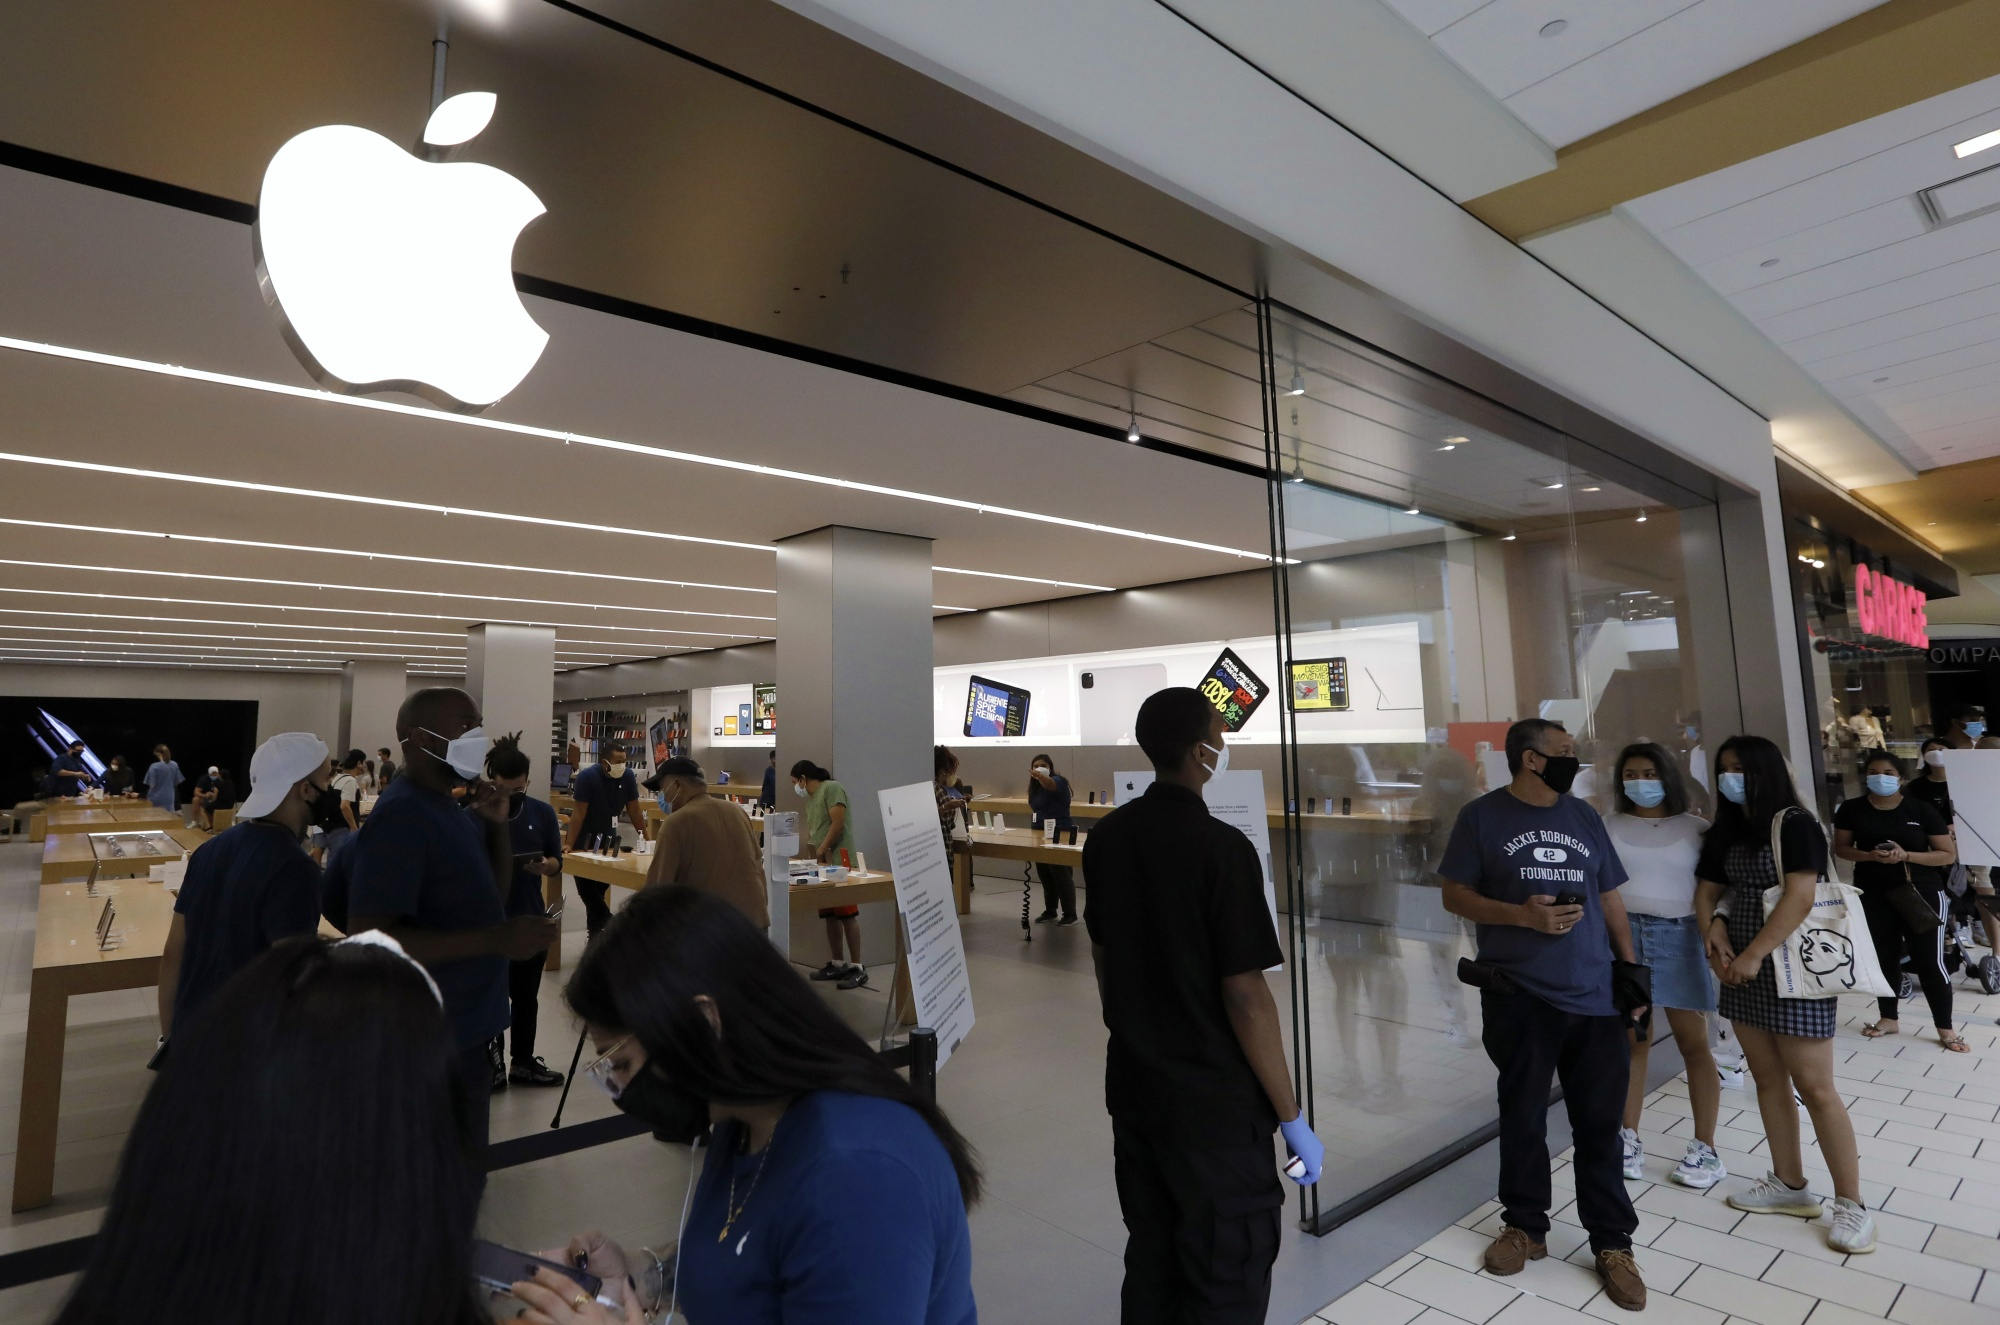 Shoppers stand in line to enter the Apple store at the Queens Center shopping mall in Queens, New York.